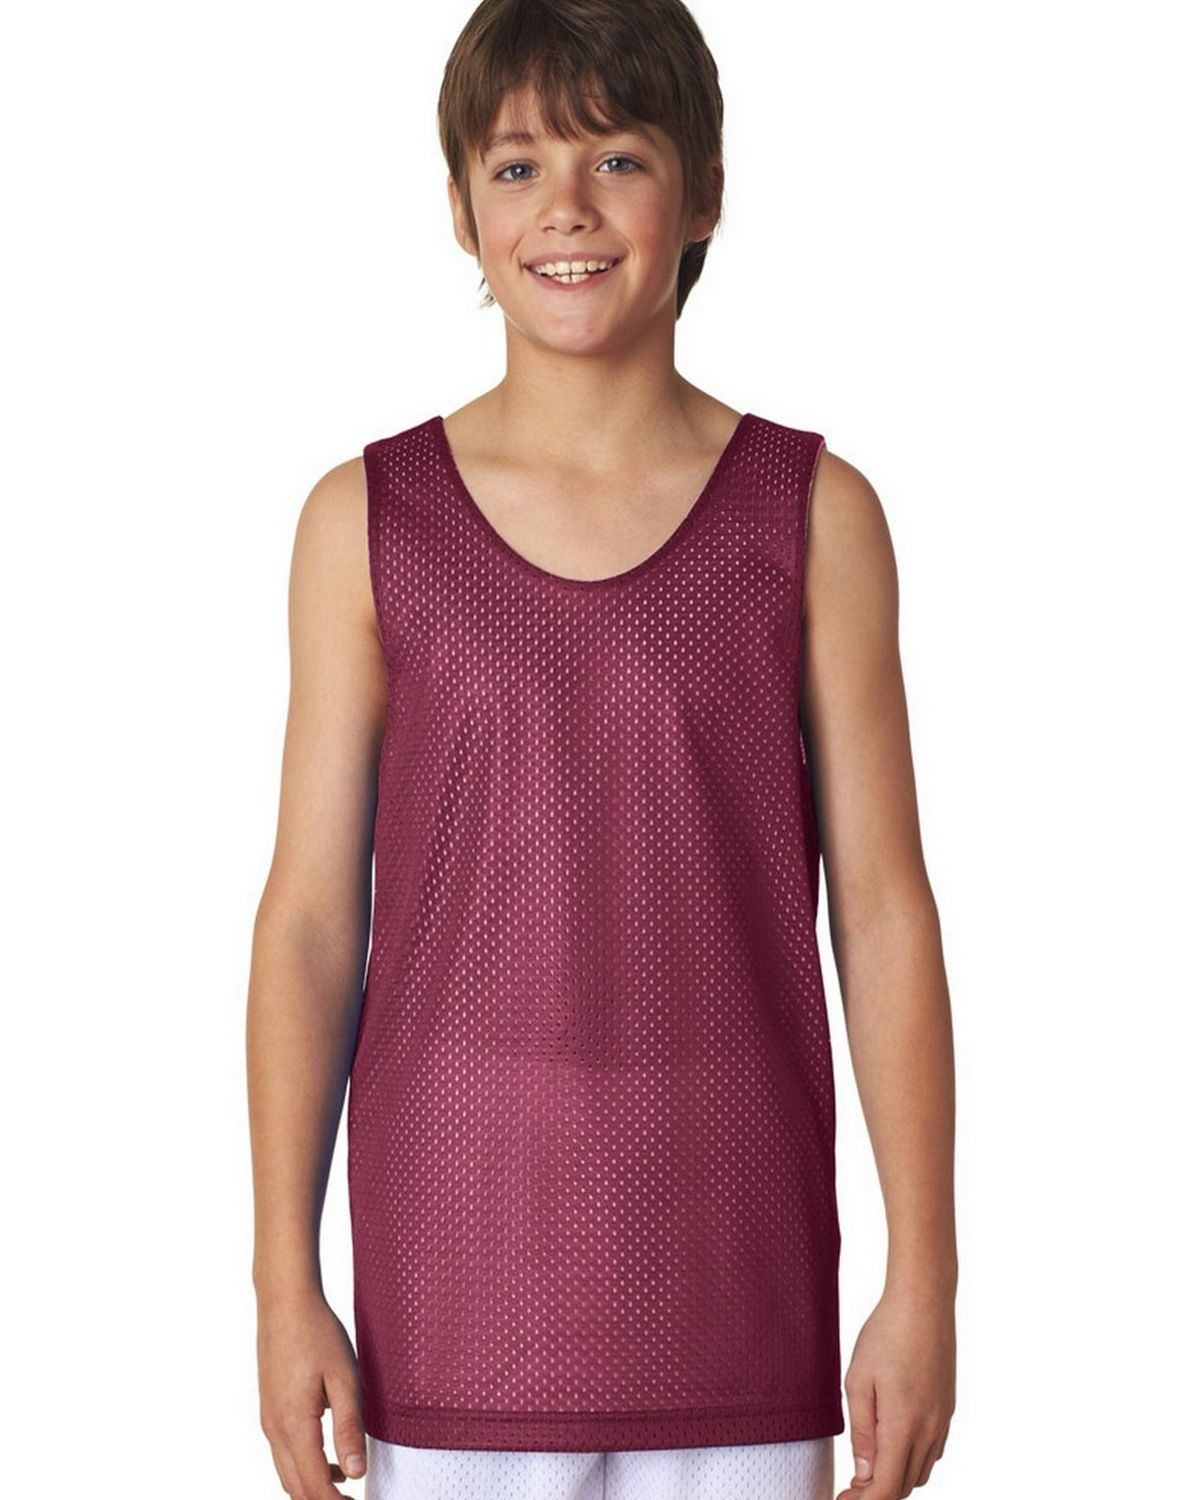 Image of A4 N2206 Youth Reversible Mesh Tank - Cardinal/White - S